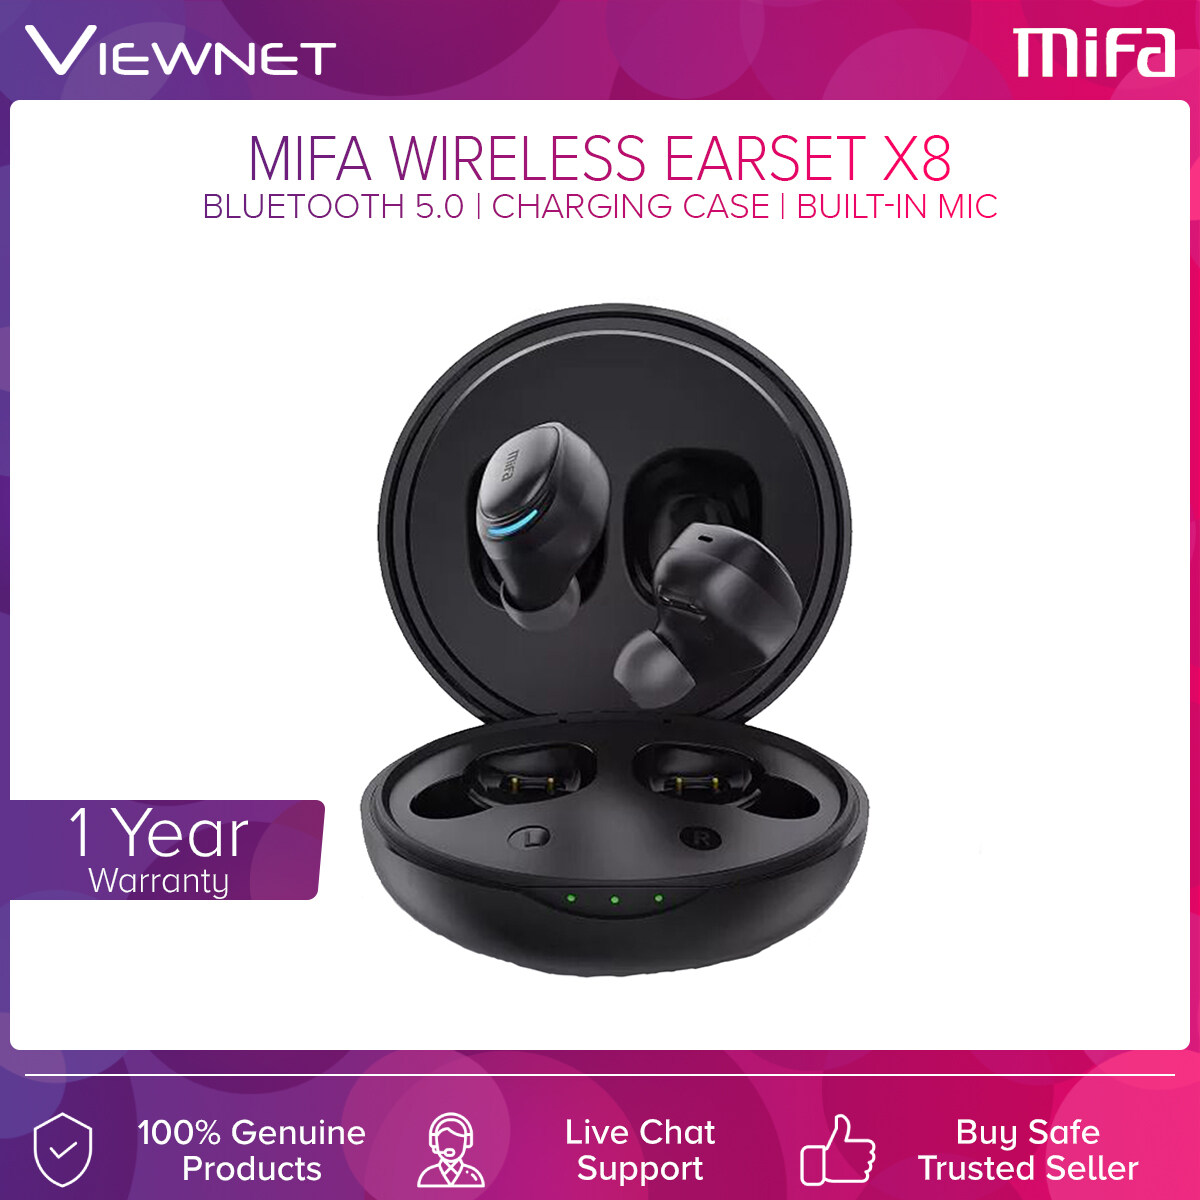 Mifa True Wireless Earset X8 with Bluetooth 5.0, Built-In Mic, Charging Case, Noise Cancelling, Up To 4 Hours Battery Life, 50 Hours Stanby Time